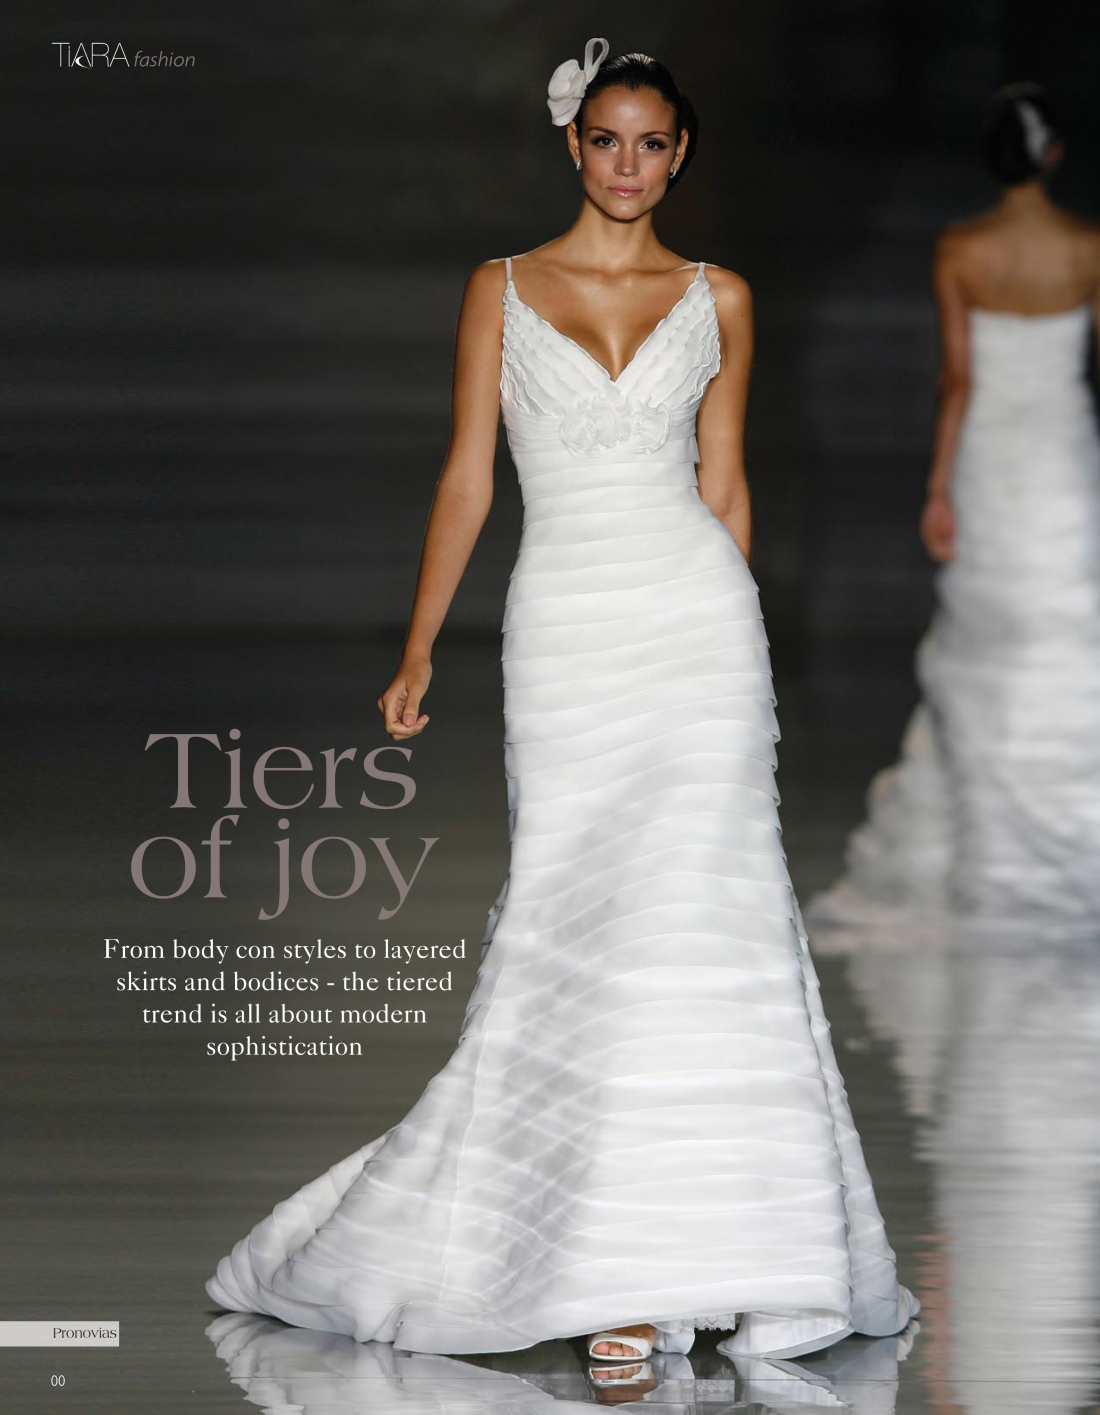 Wedding dress trends feature, Tiara magazine Spring 2010 issue - Amy Lewis - Page 1